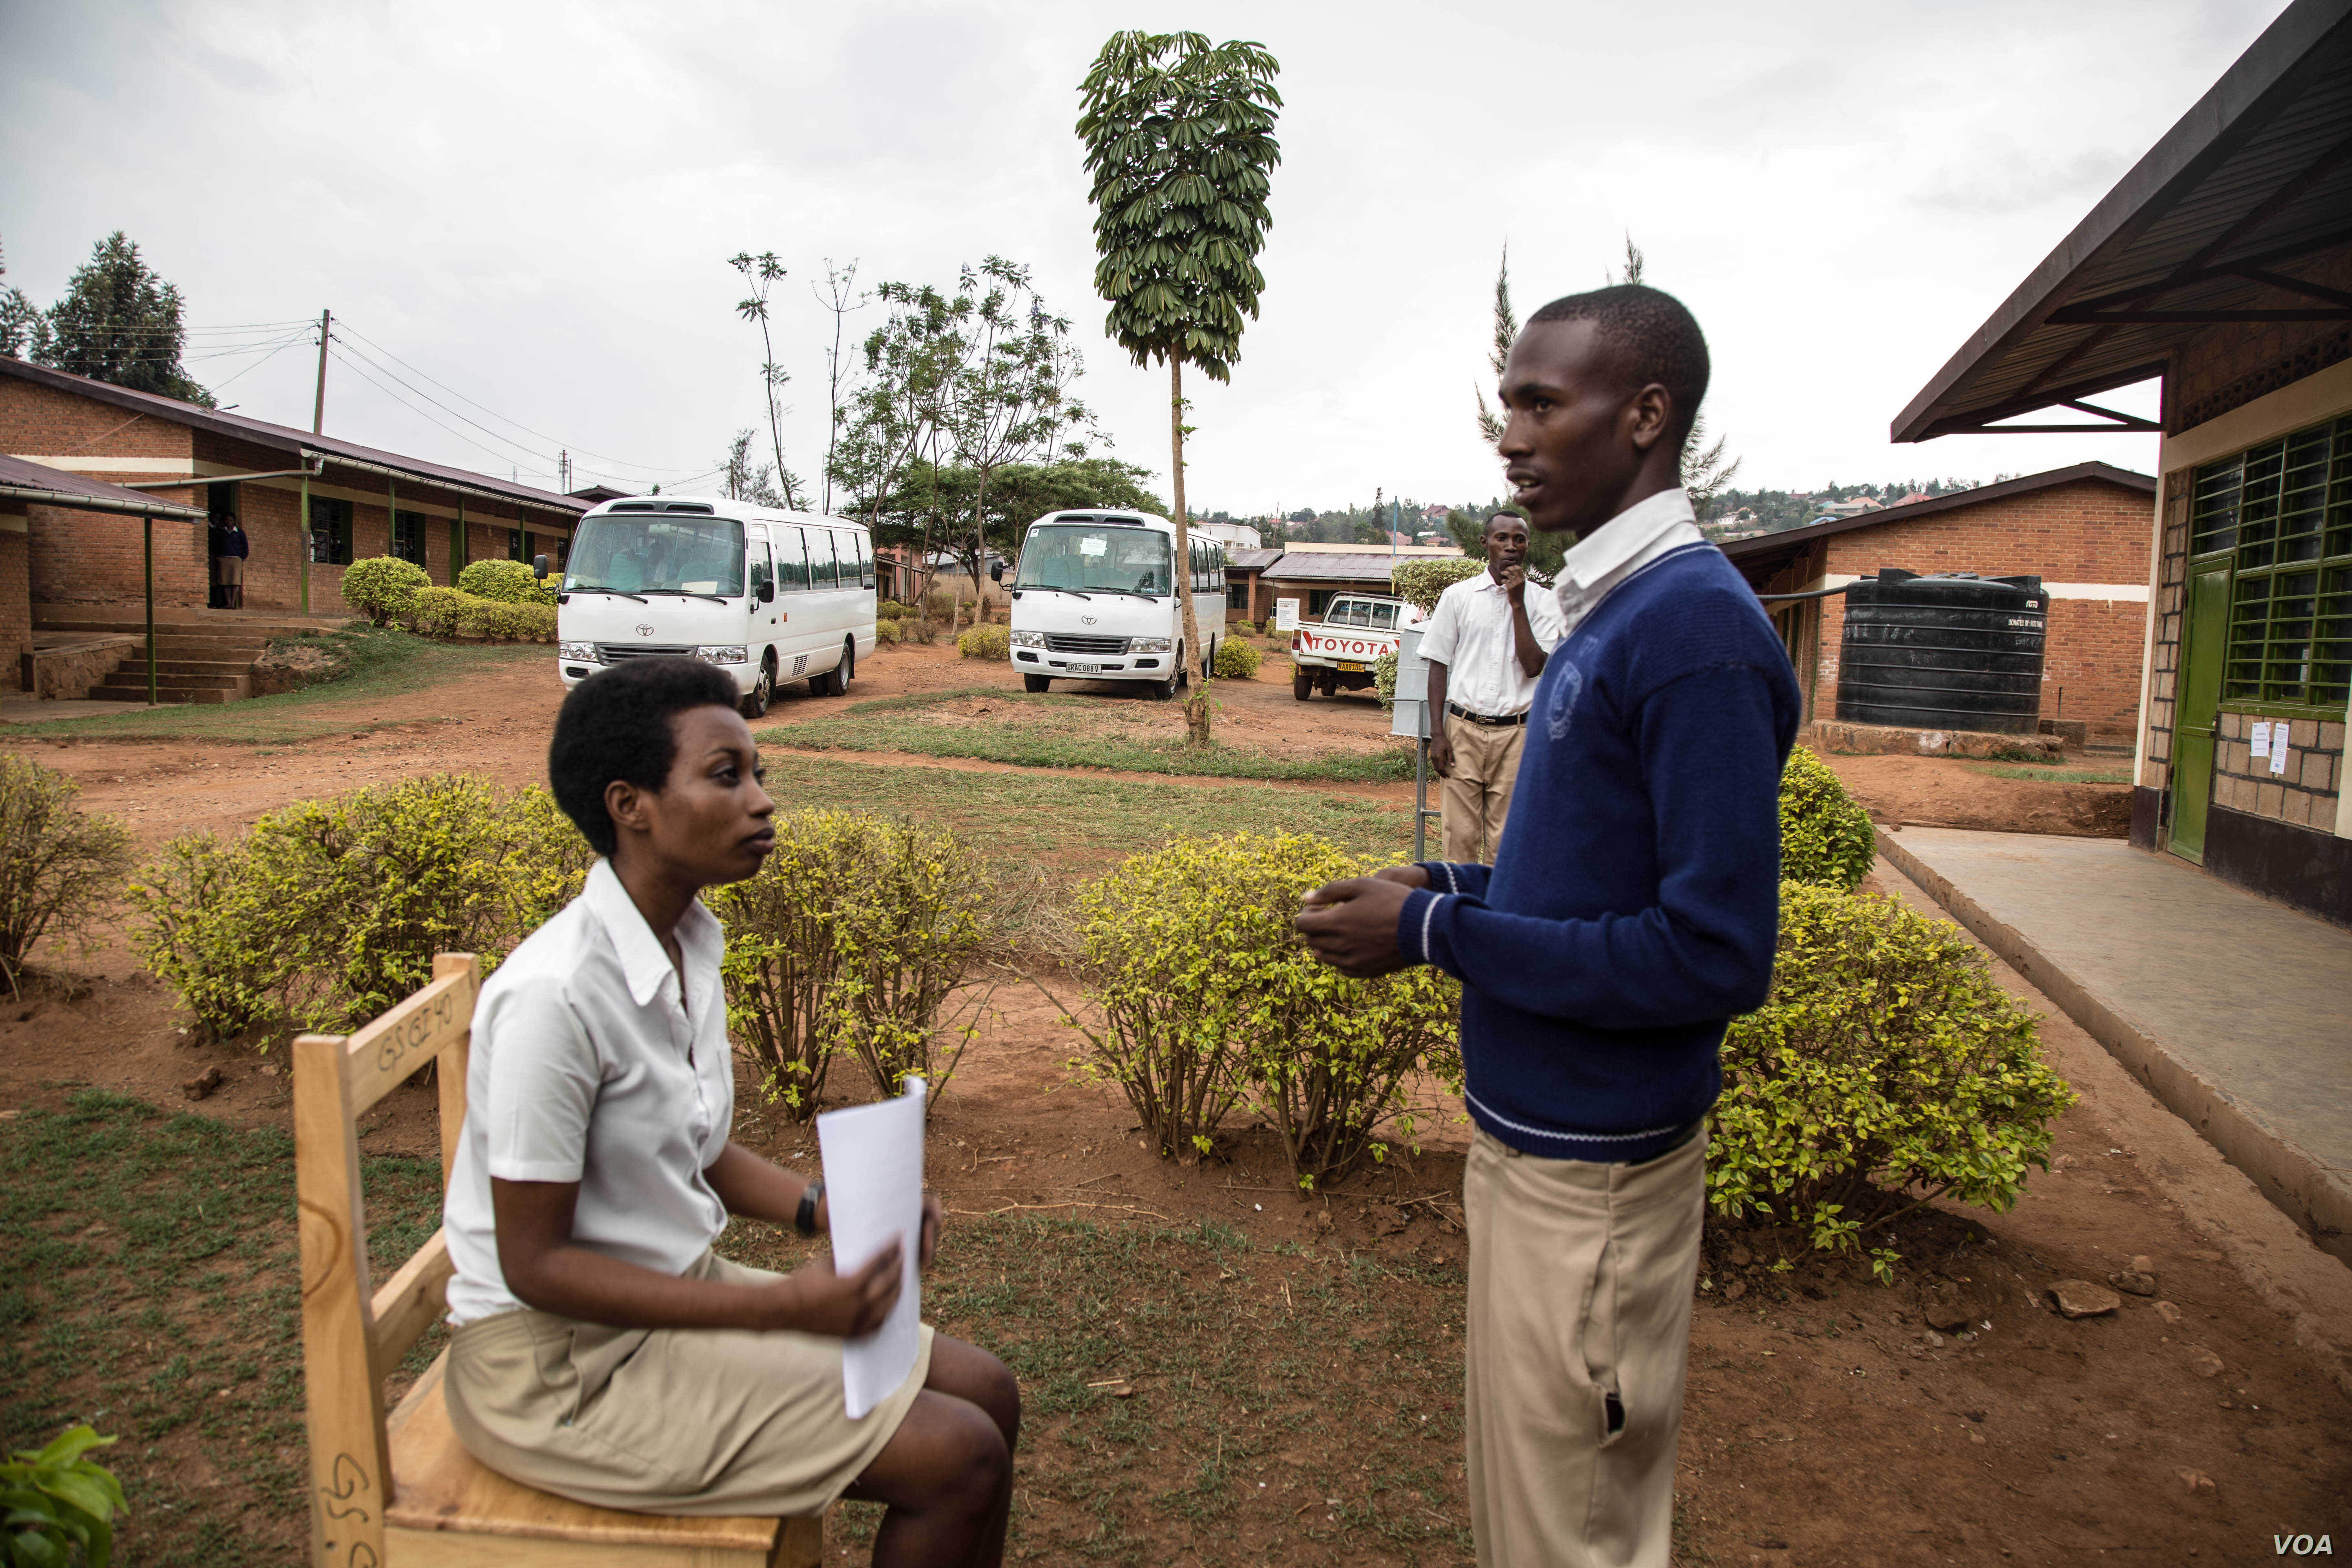 Students at a public high school in Kigali, Rwanda participate in mock job interviews as part of a soft skills and work readiness classroom program. (Photo: Chika Oduah for VOA)